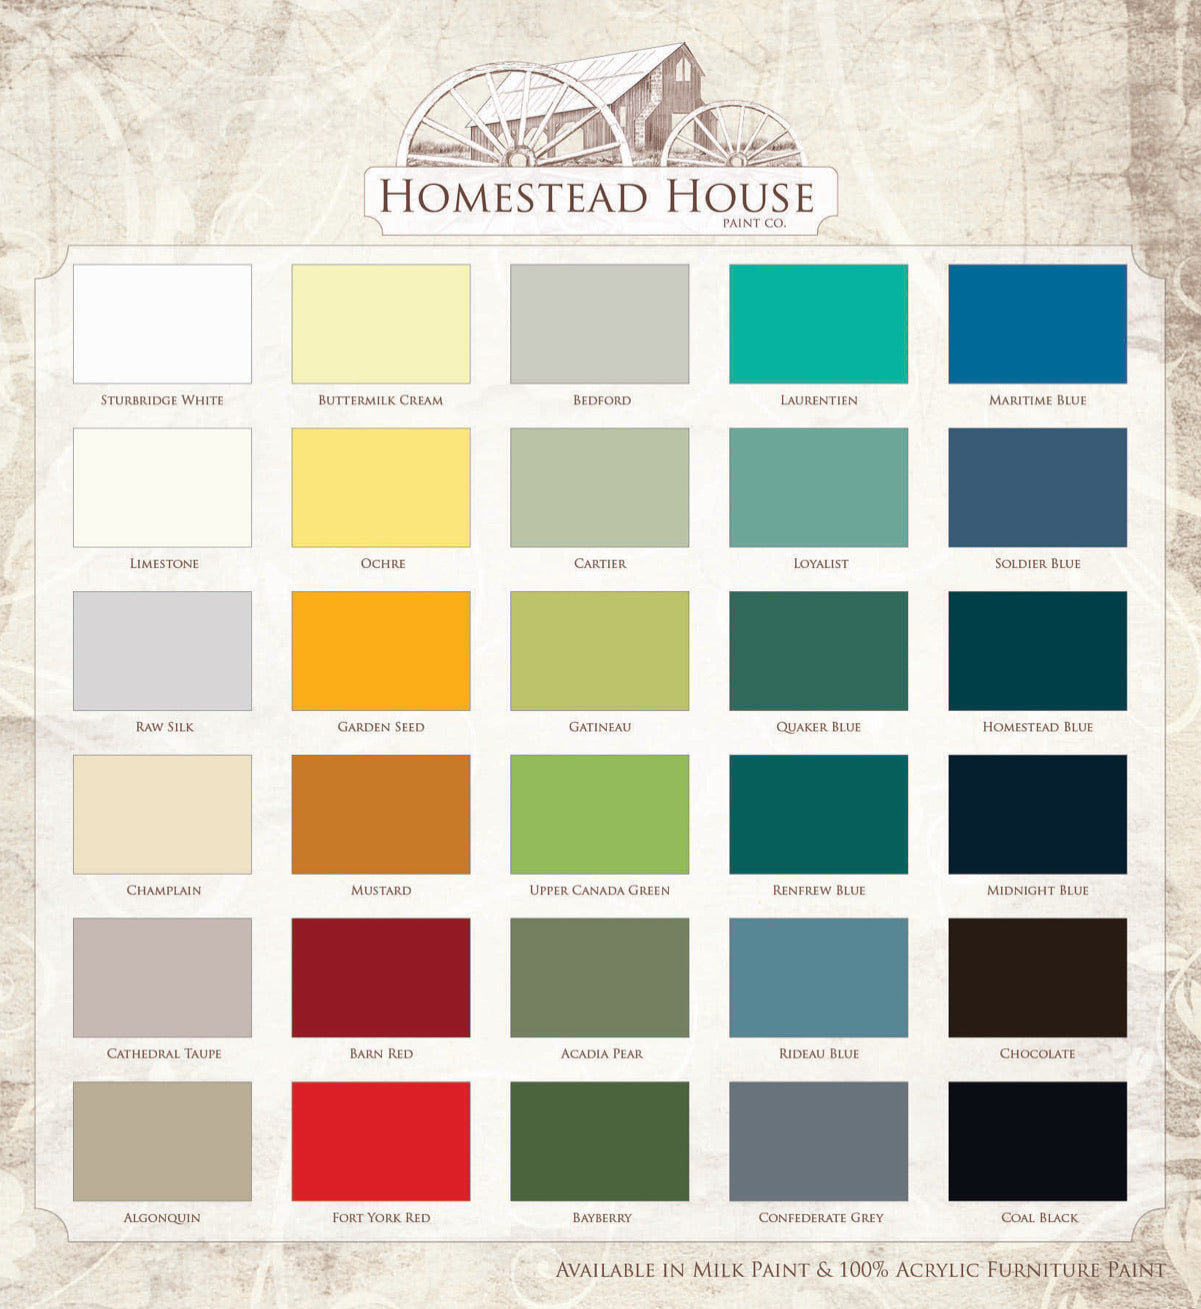 Homestead House Furniture Paint